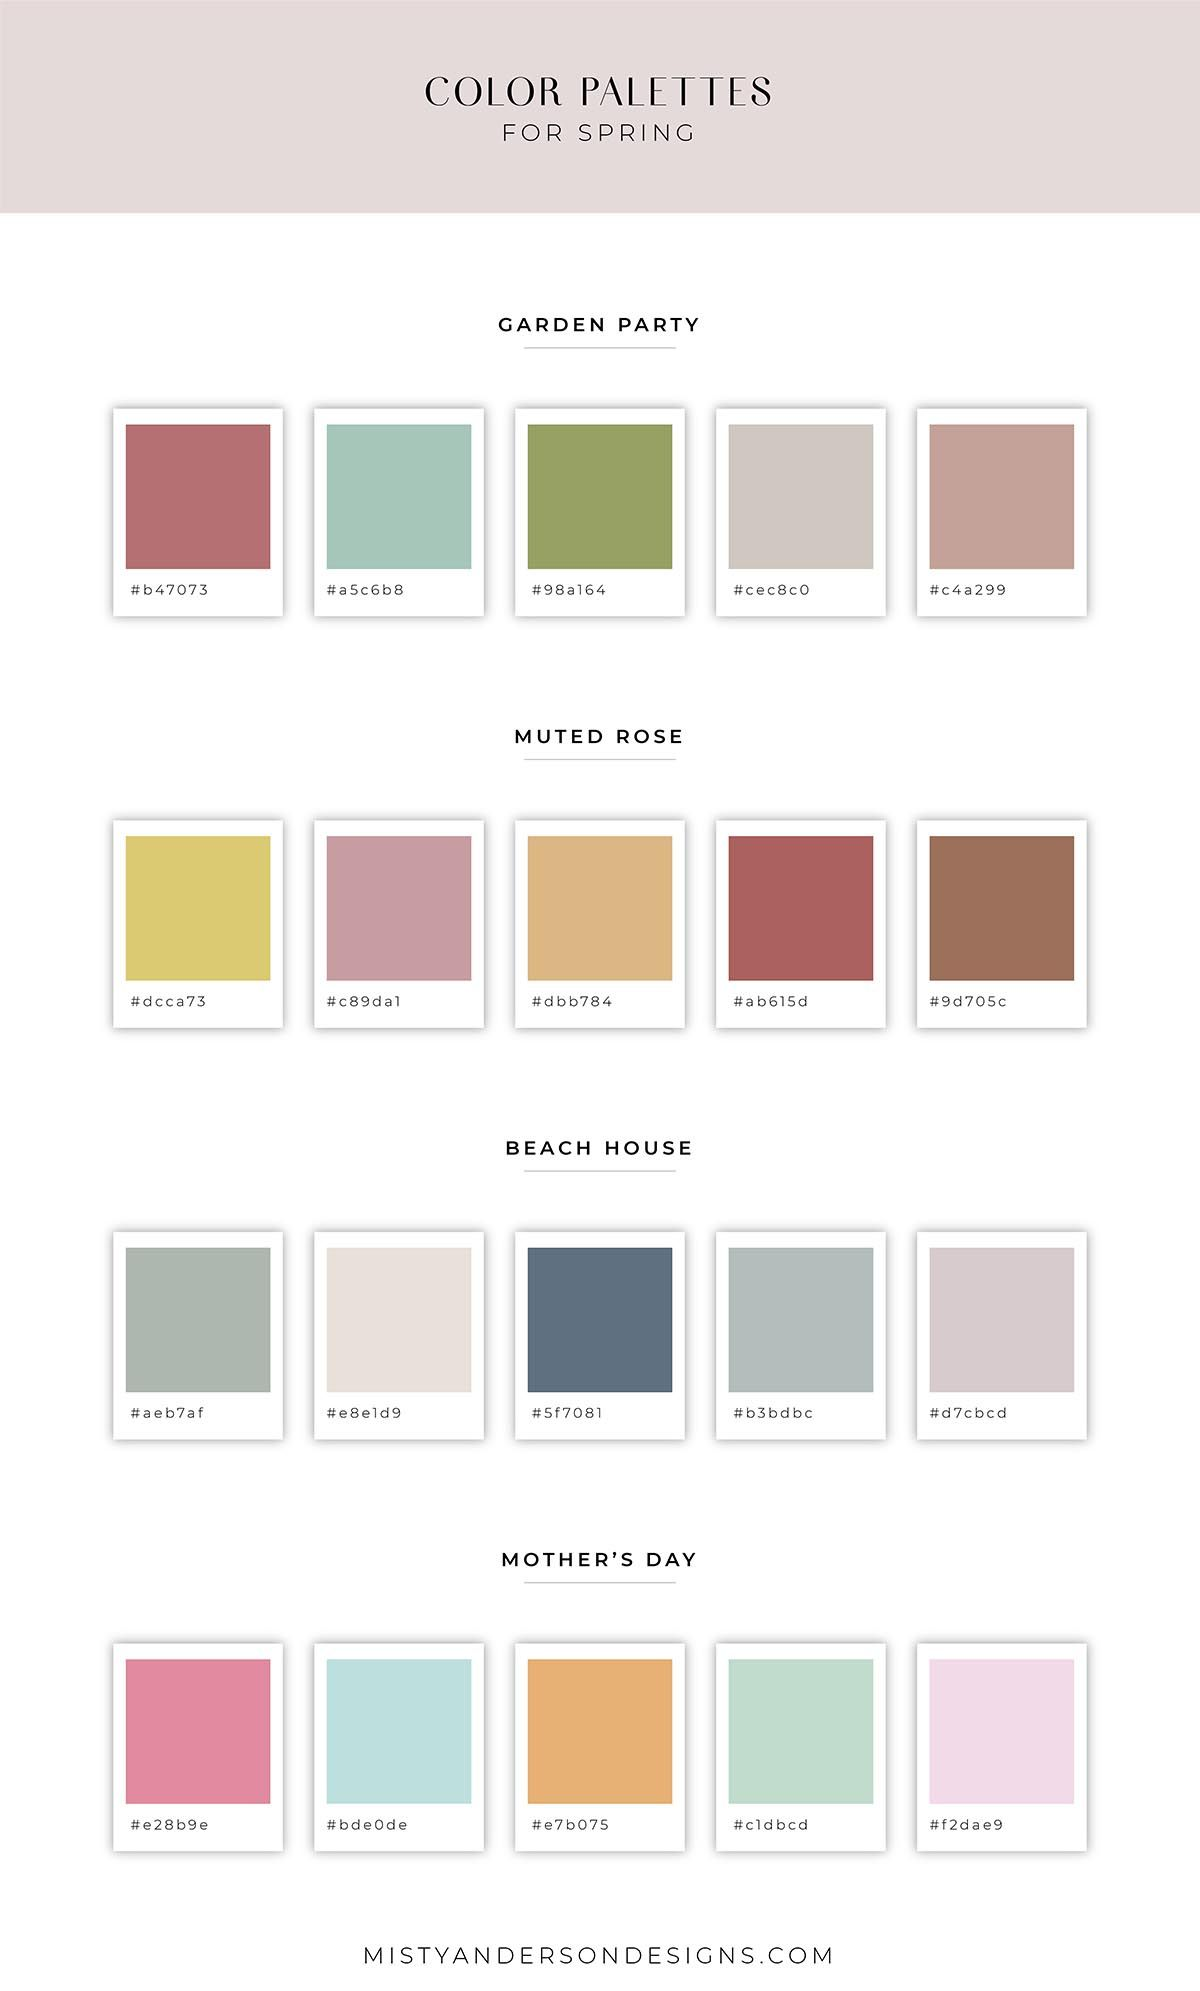 Pin On Color Palette Inspiration